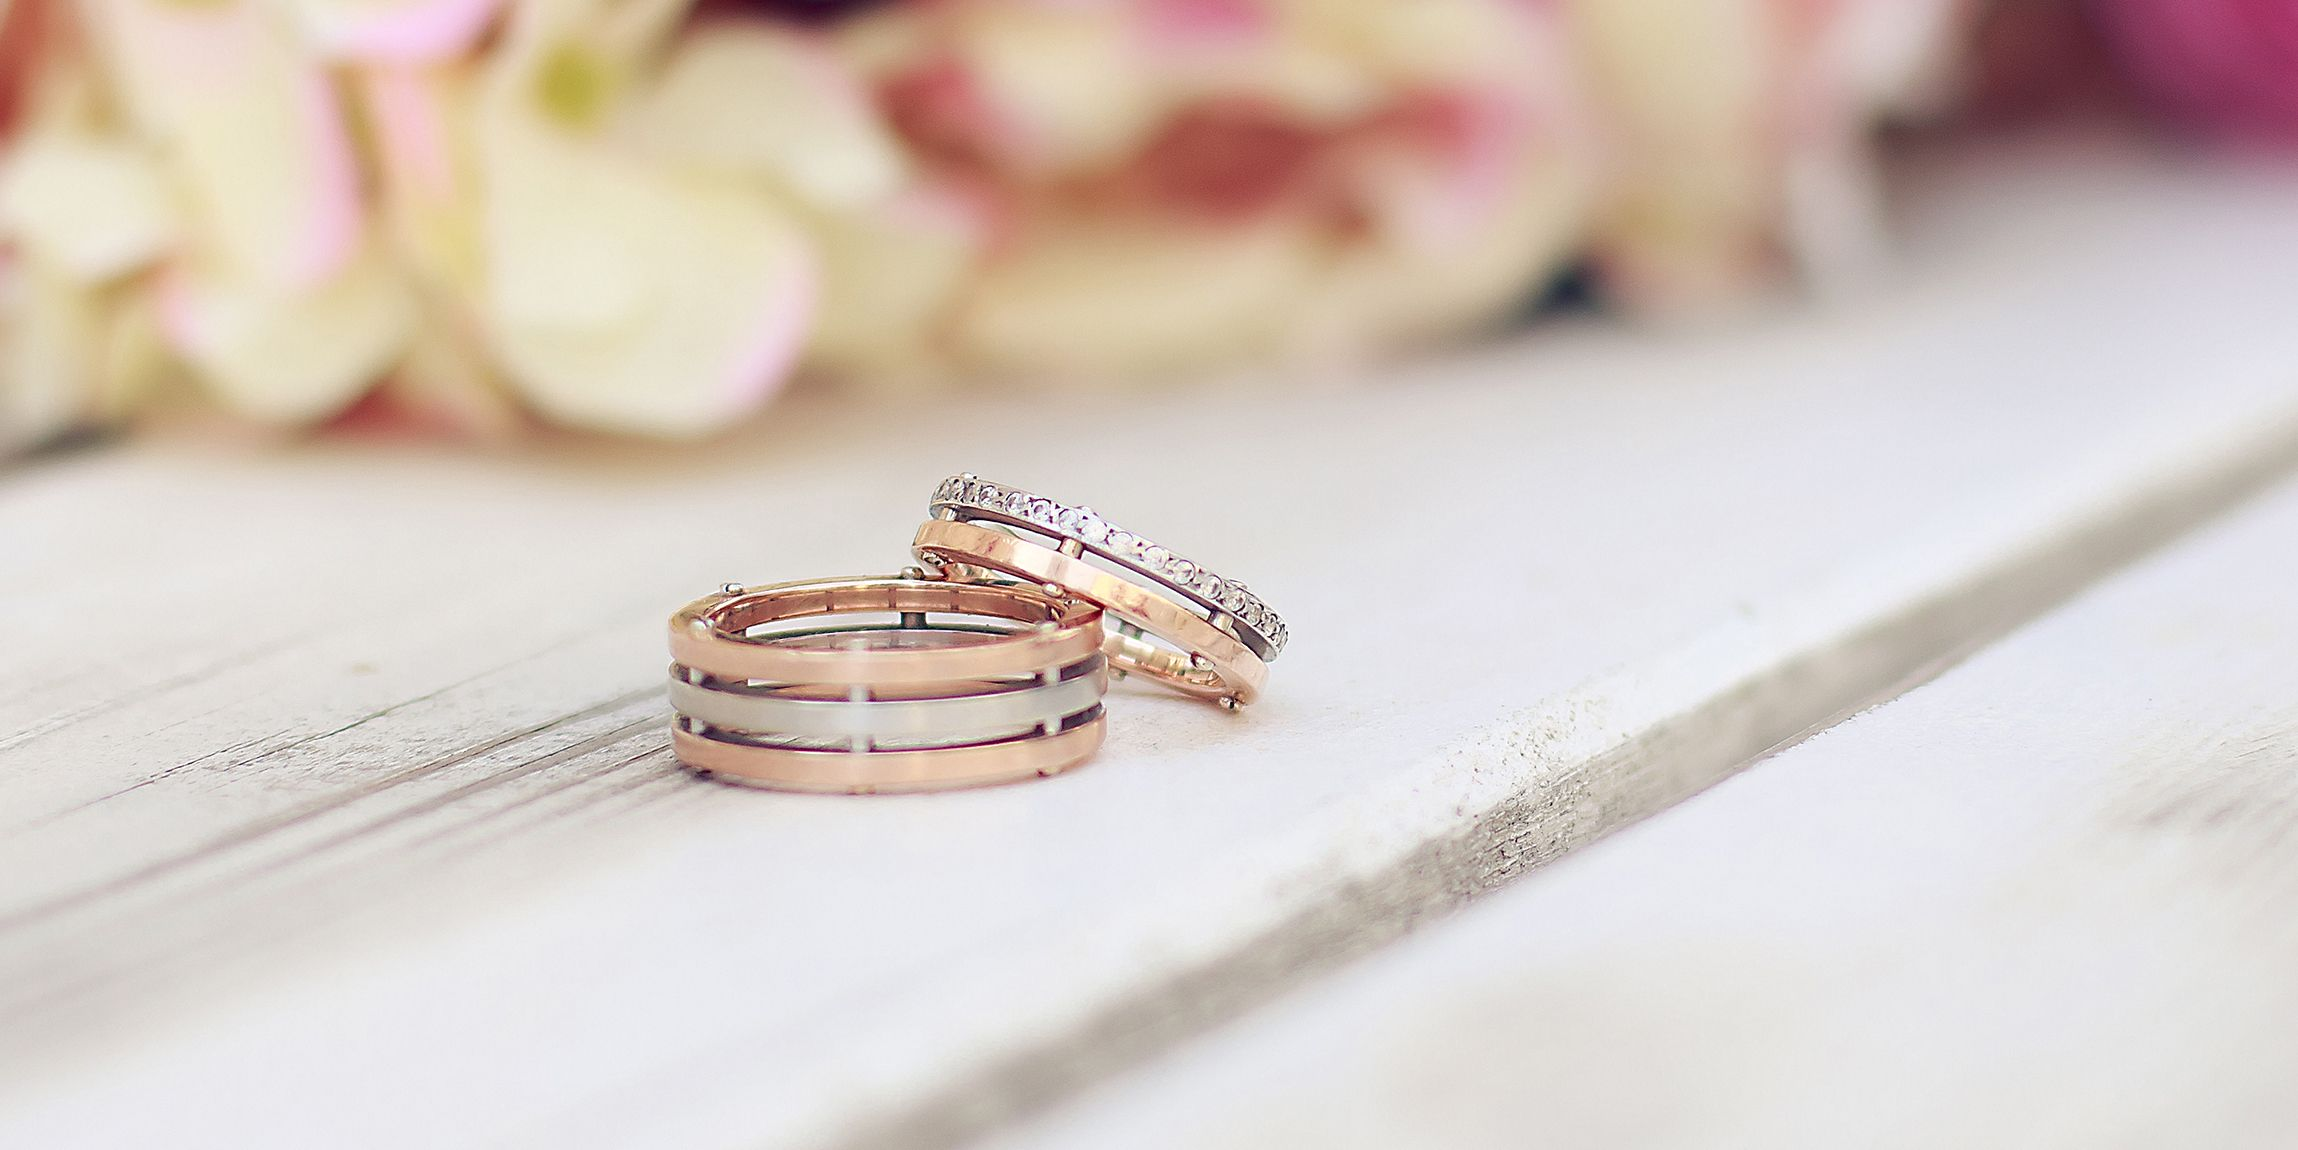 luxury under gold pink rose wedding rings of awesome alternative weddings com